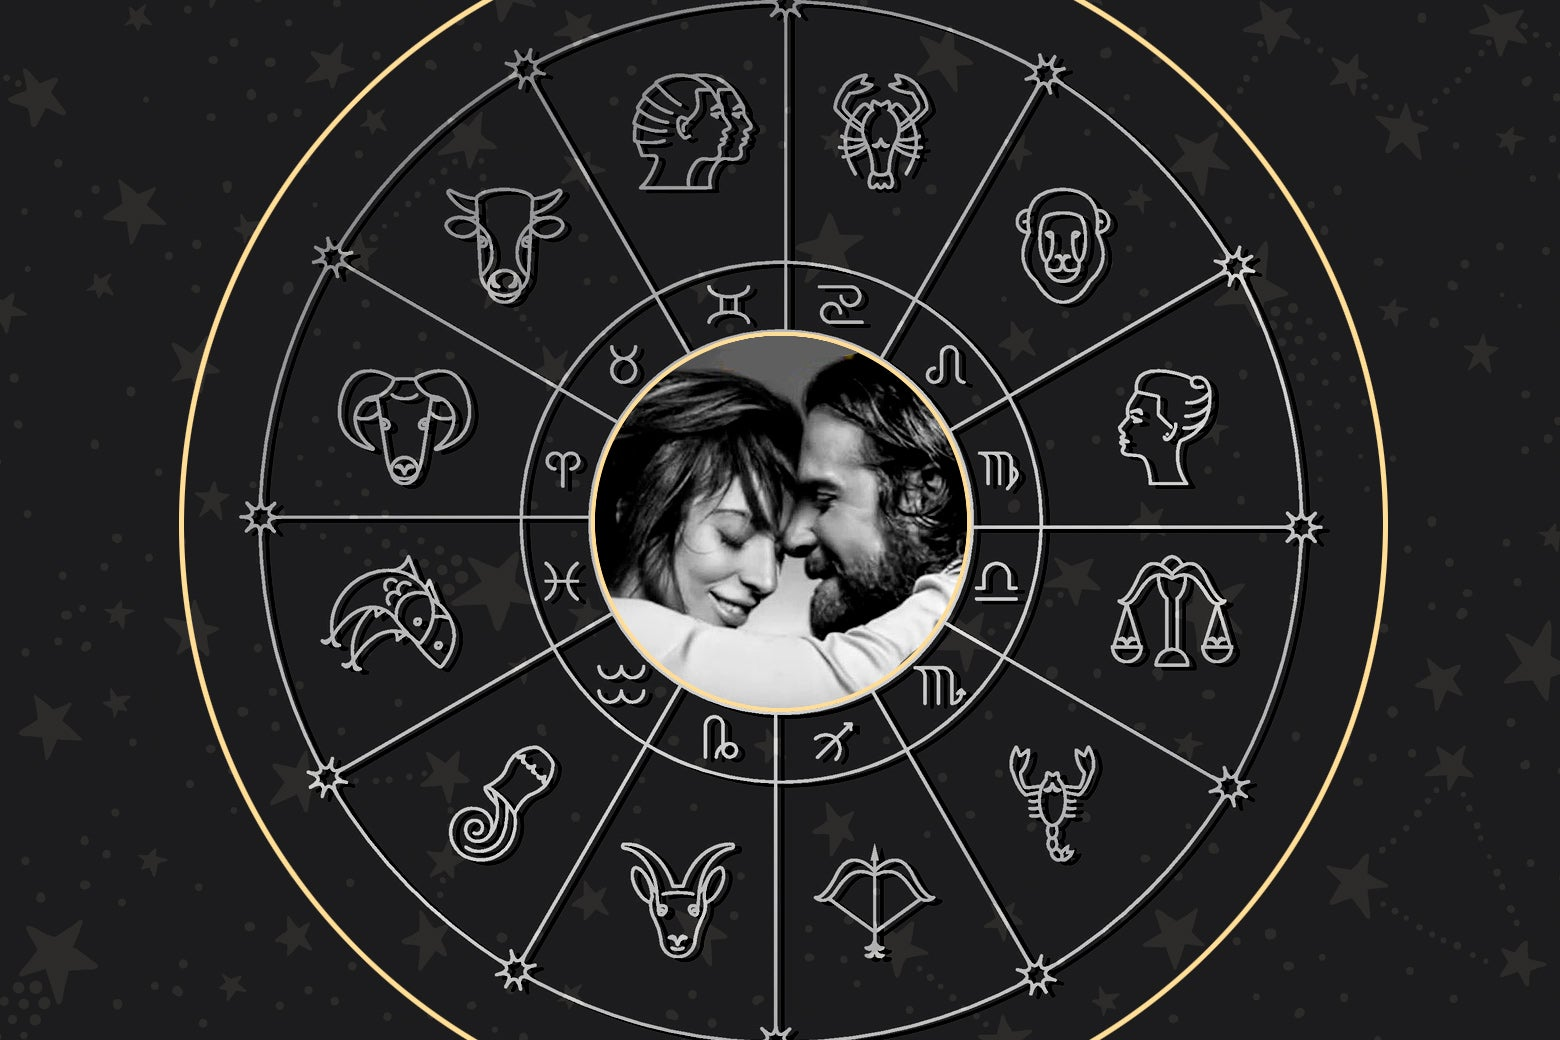 Lady Gaga and Bradley Cooper within an astrological chart